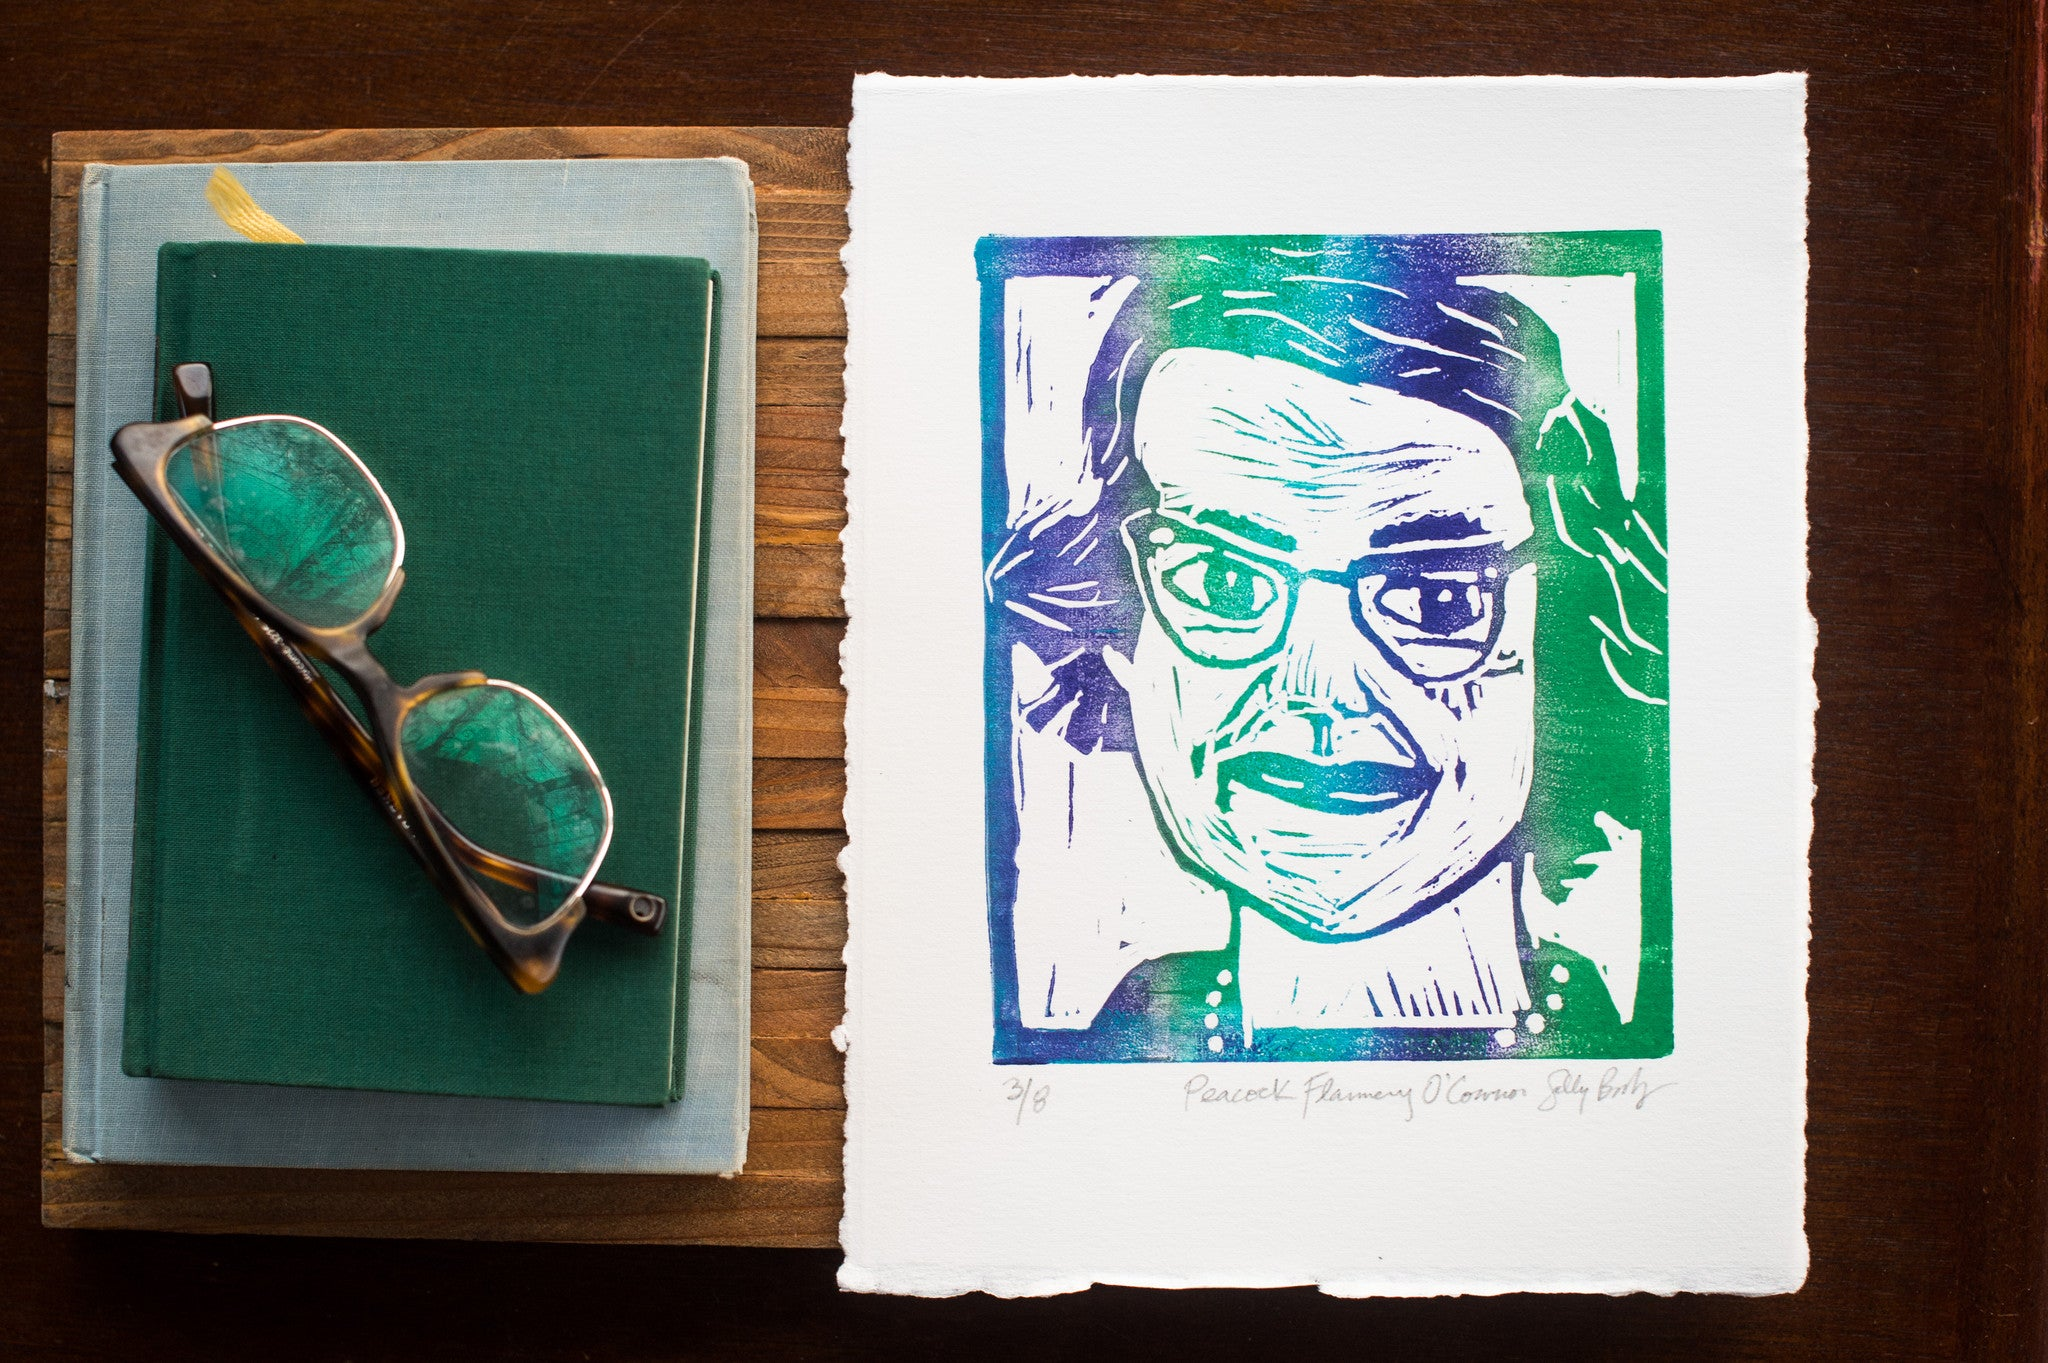 Hand Pulled Linocut Flannery O'Connor peacock colored art print with glasses and book Literary gift by Eastgrove studio